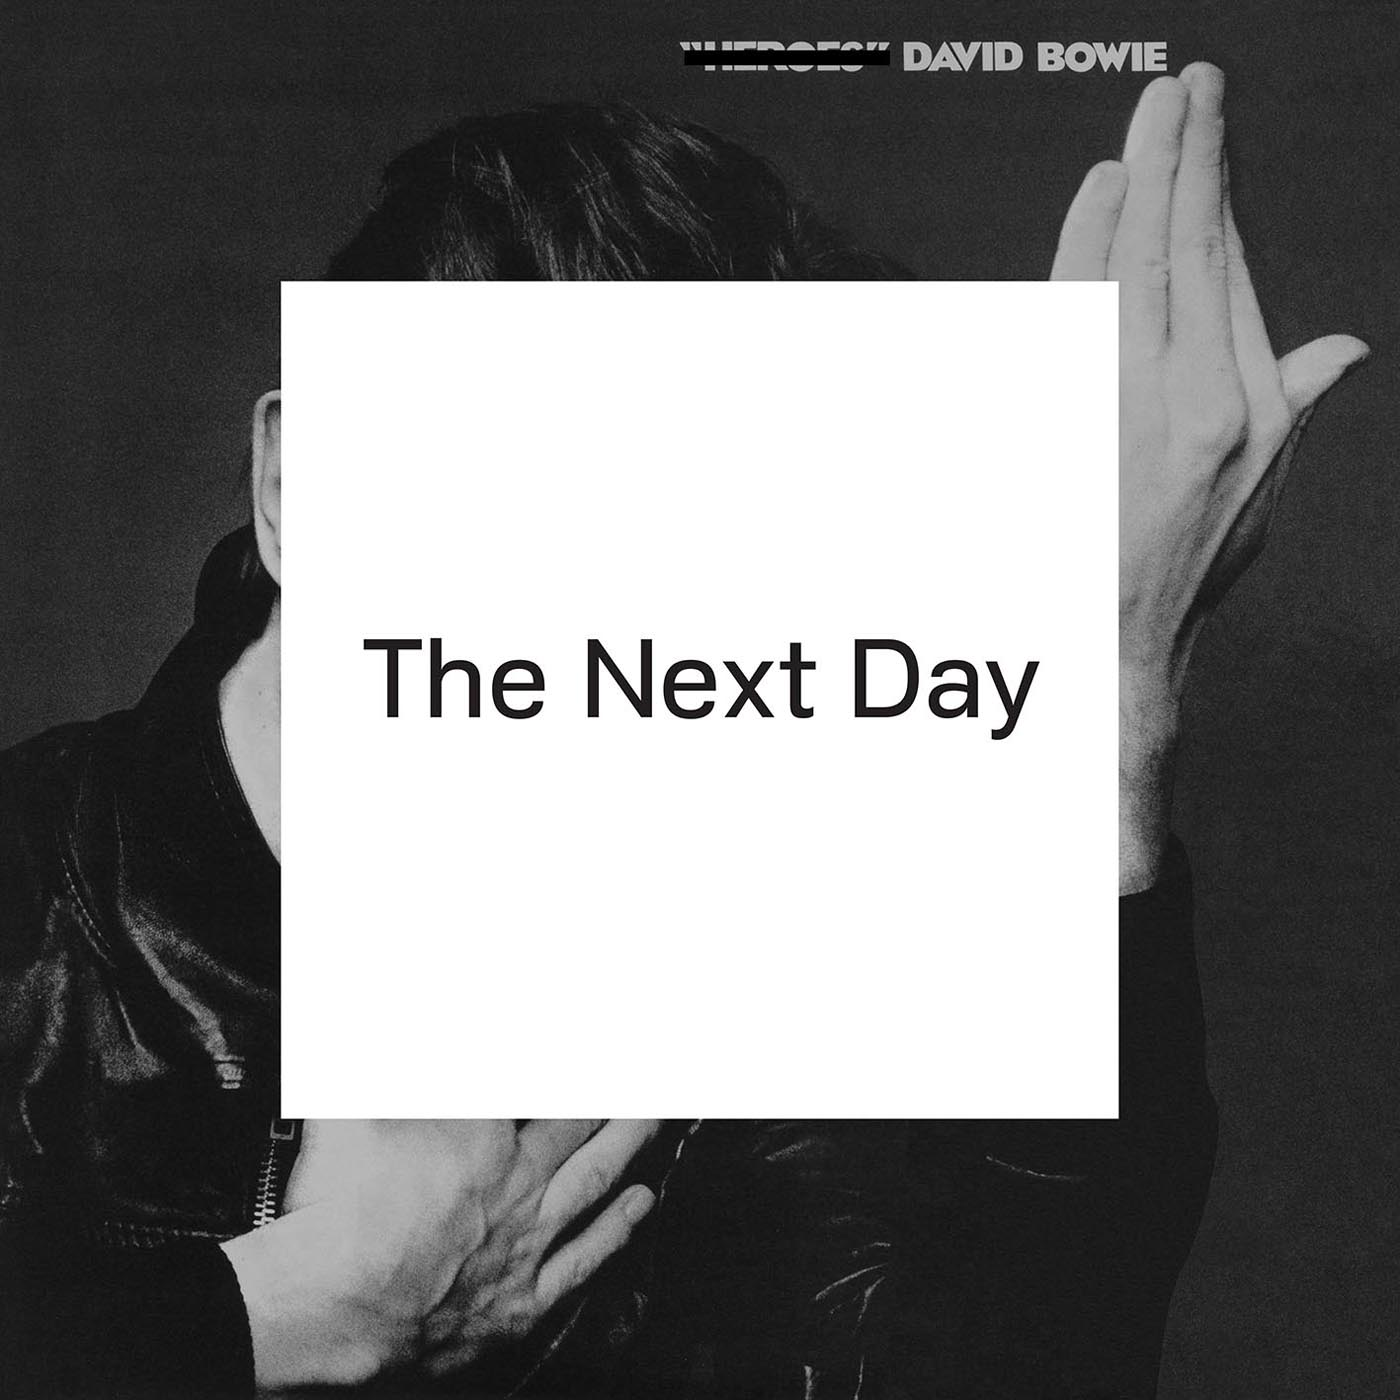 David Bowie 6/1 to go straight to number one with new album The Next Day